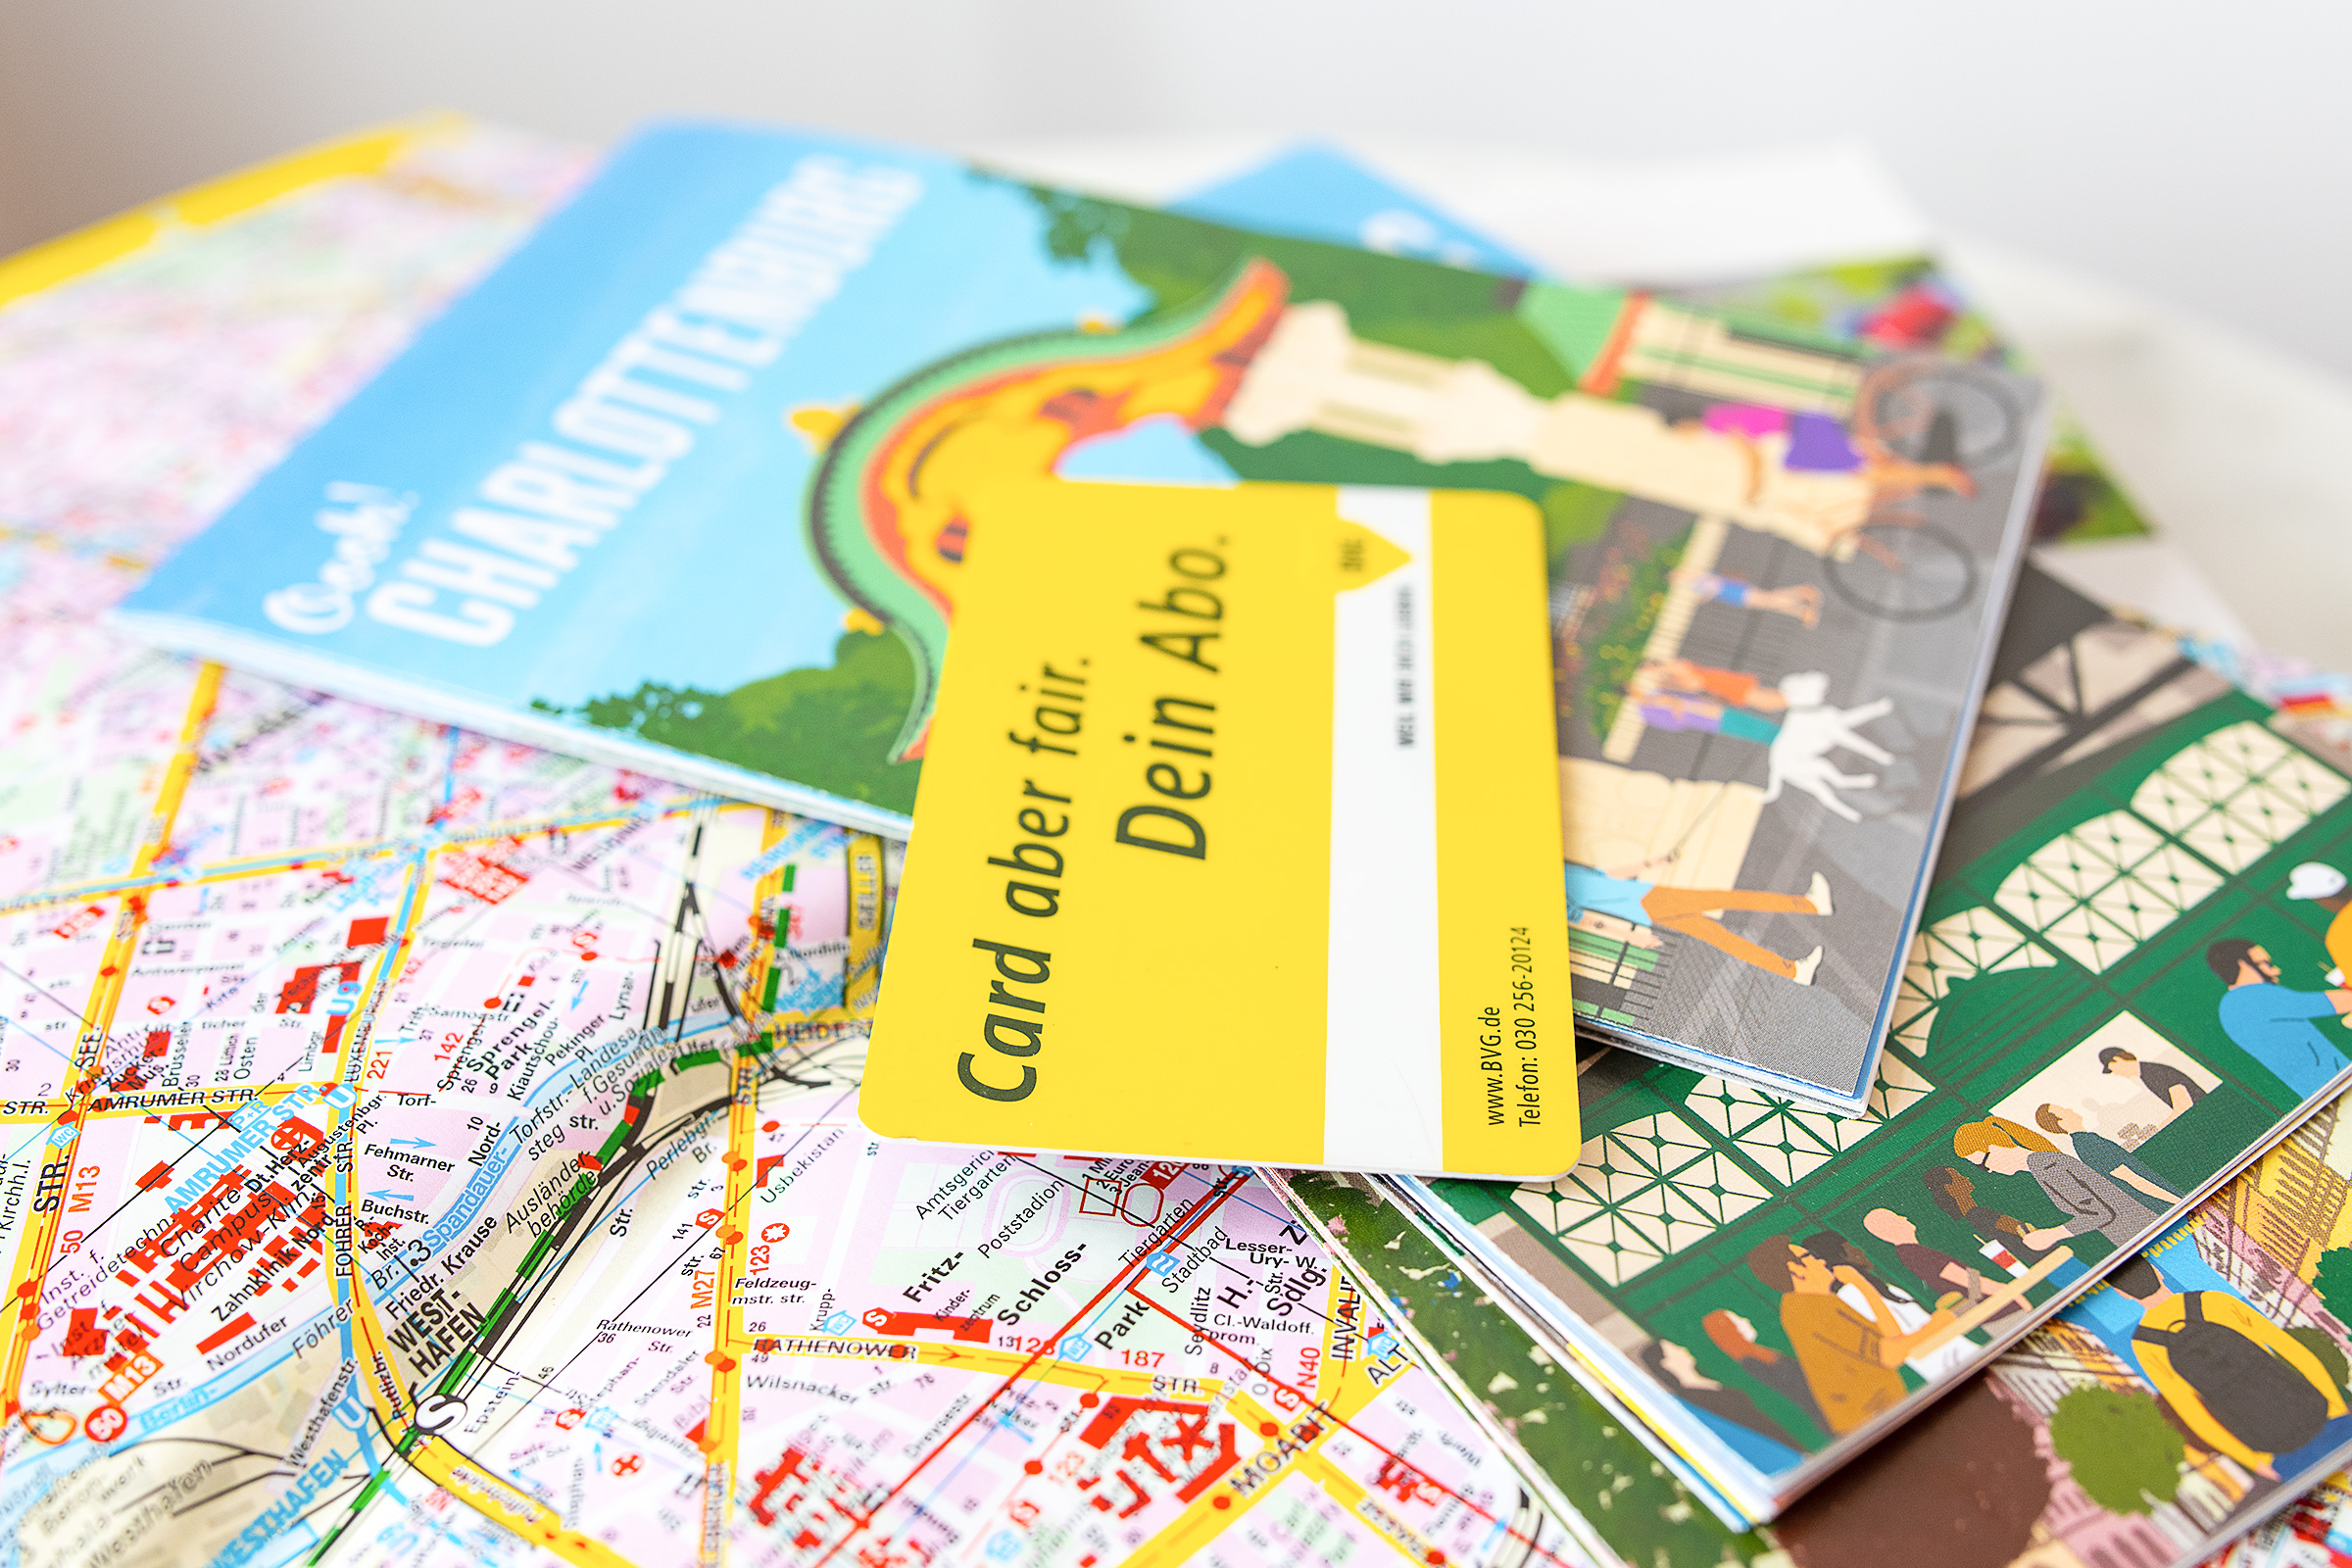 Guest Bedroom Essentials - Travel Guides and Maps